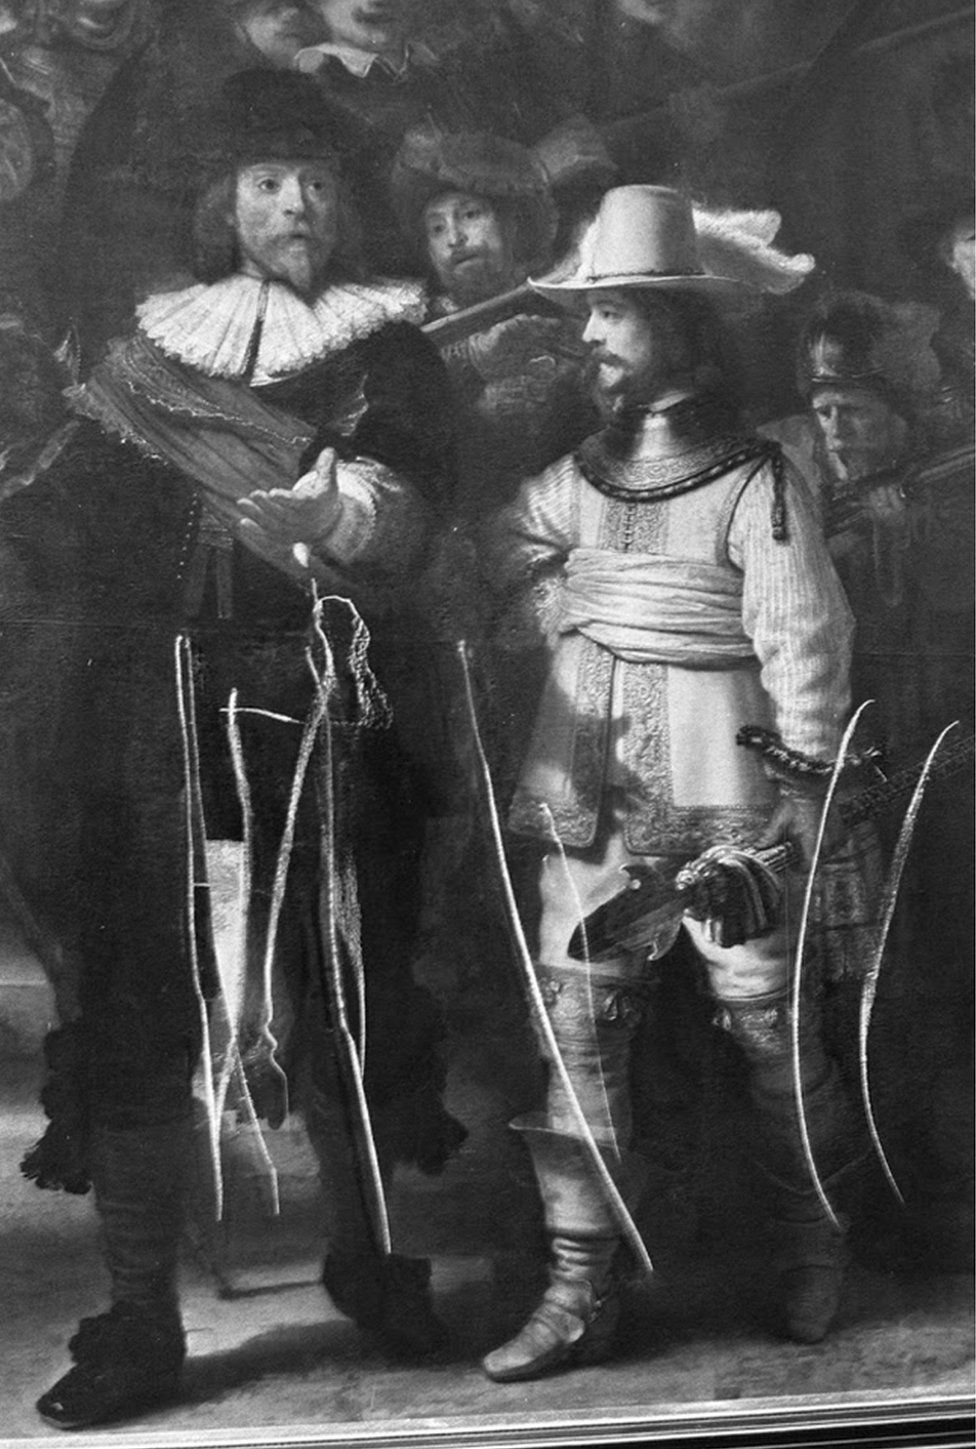 The Night Watch was severely damaged in 1975, after a man attacked the painting with a knife, inflicting 12 cuts to the canvas